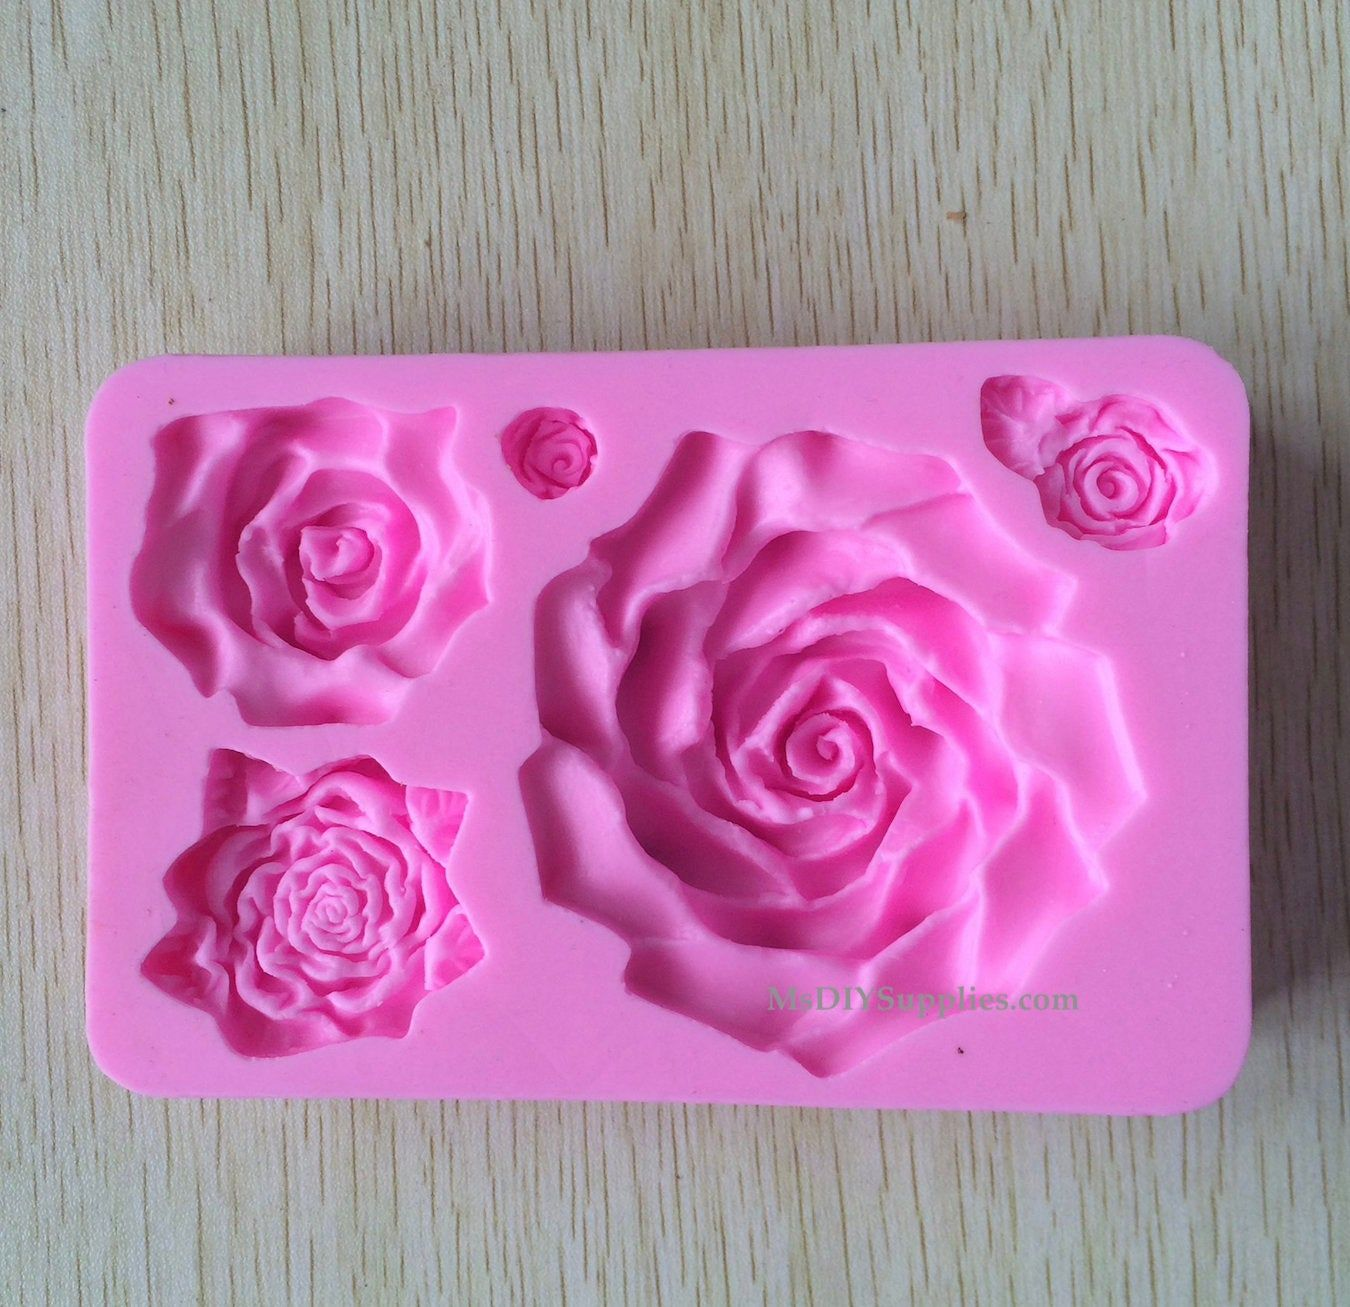 Big Rose Flower Silicone Mold For Wedding Cakes 3d Soap Molds Sugarcraft Tools Cake Decorating Cake Molds Silicone Soap Molds Silicone Molds